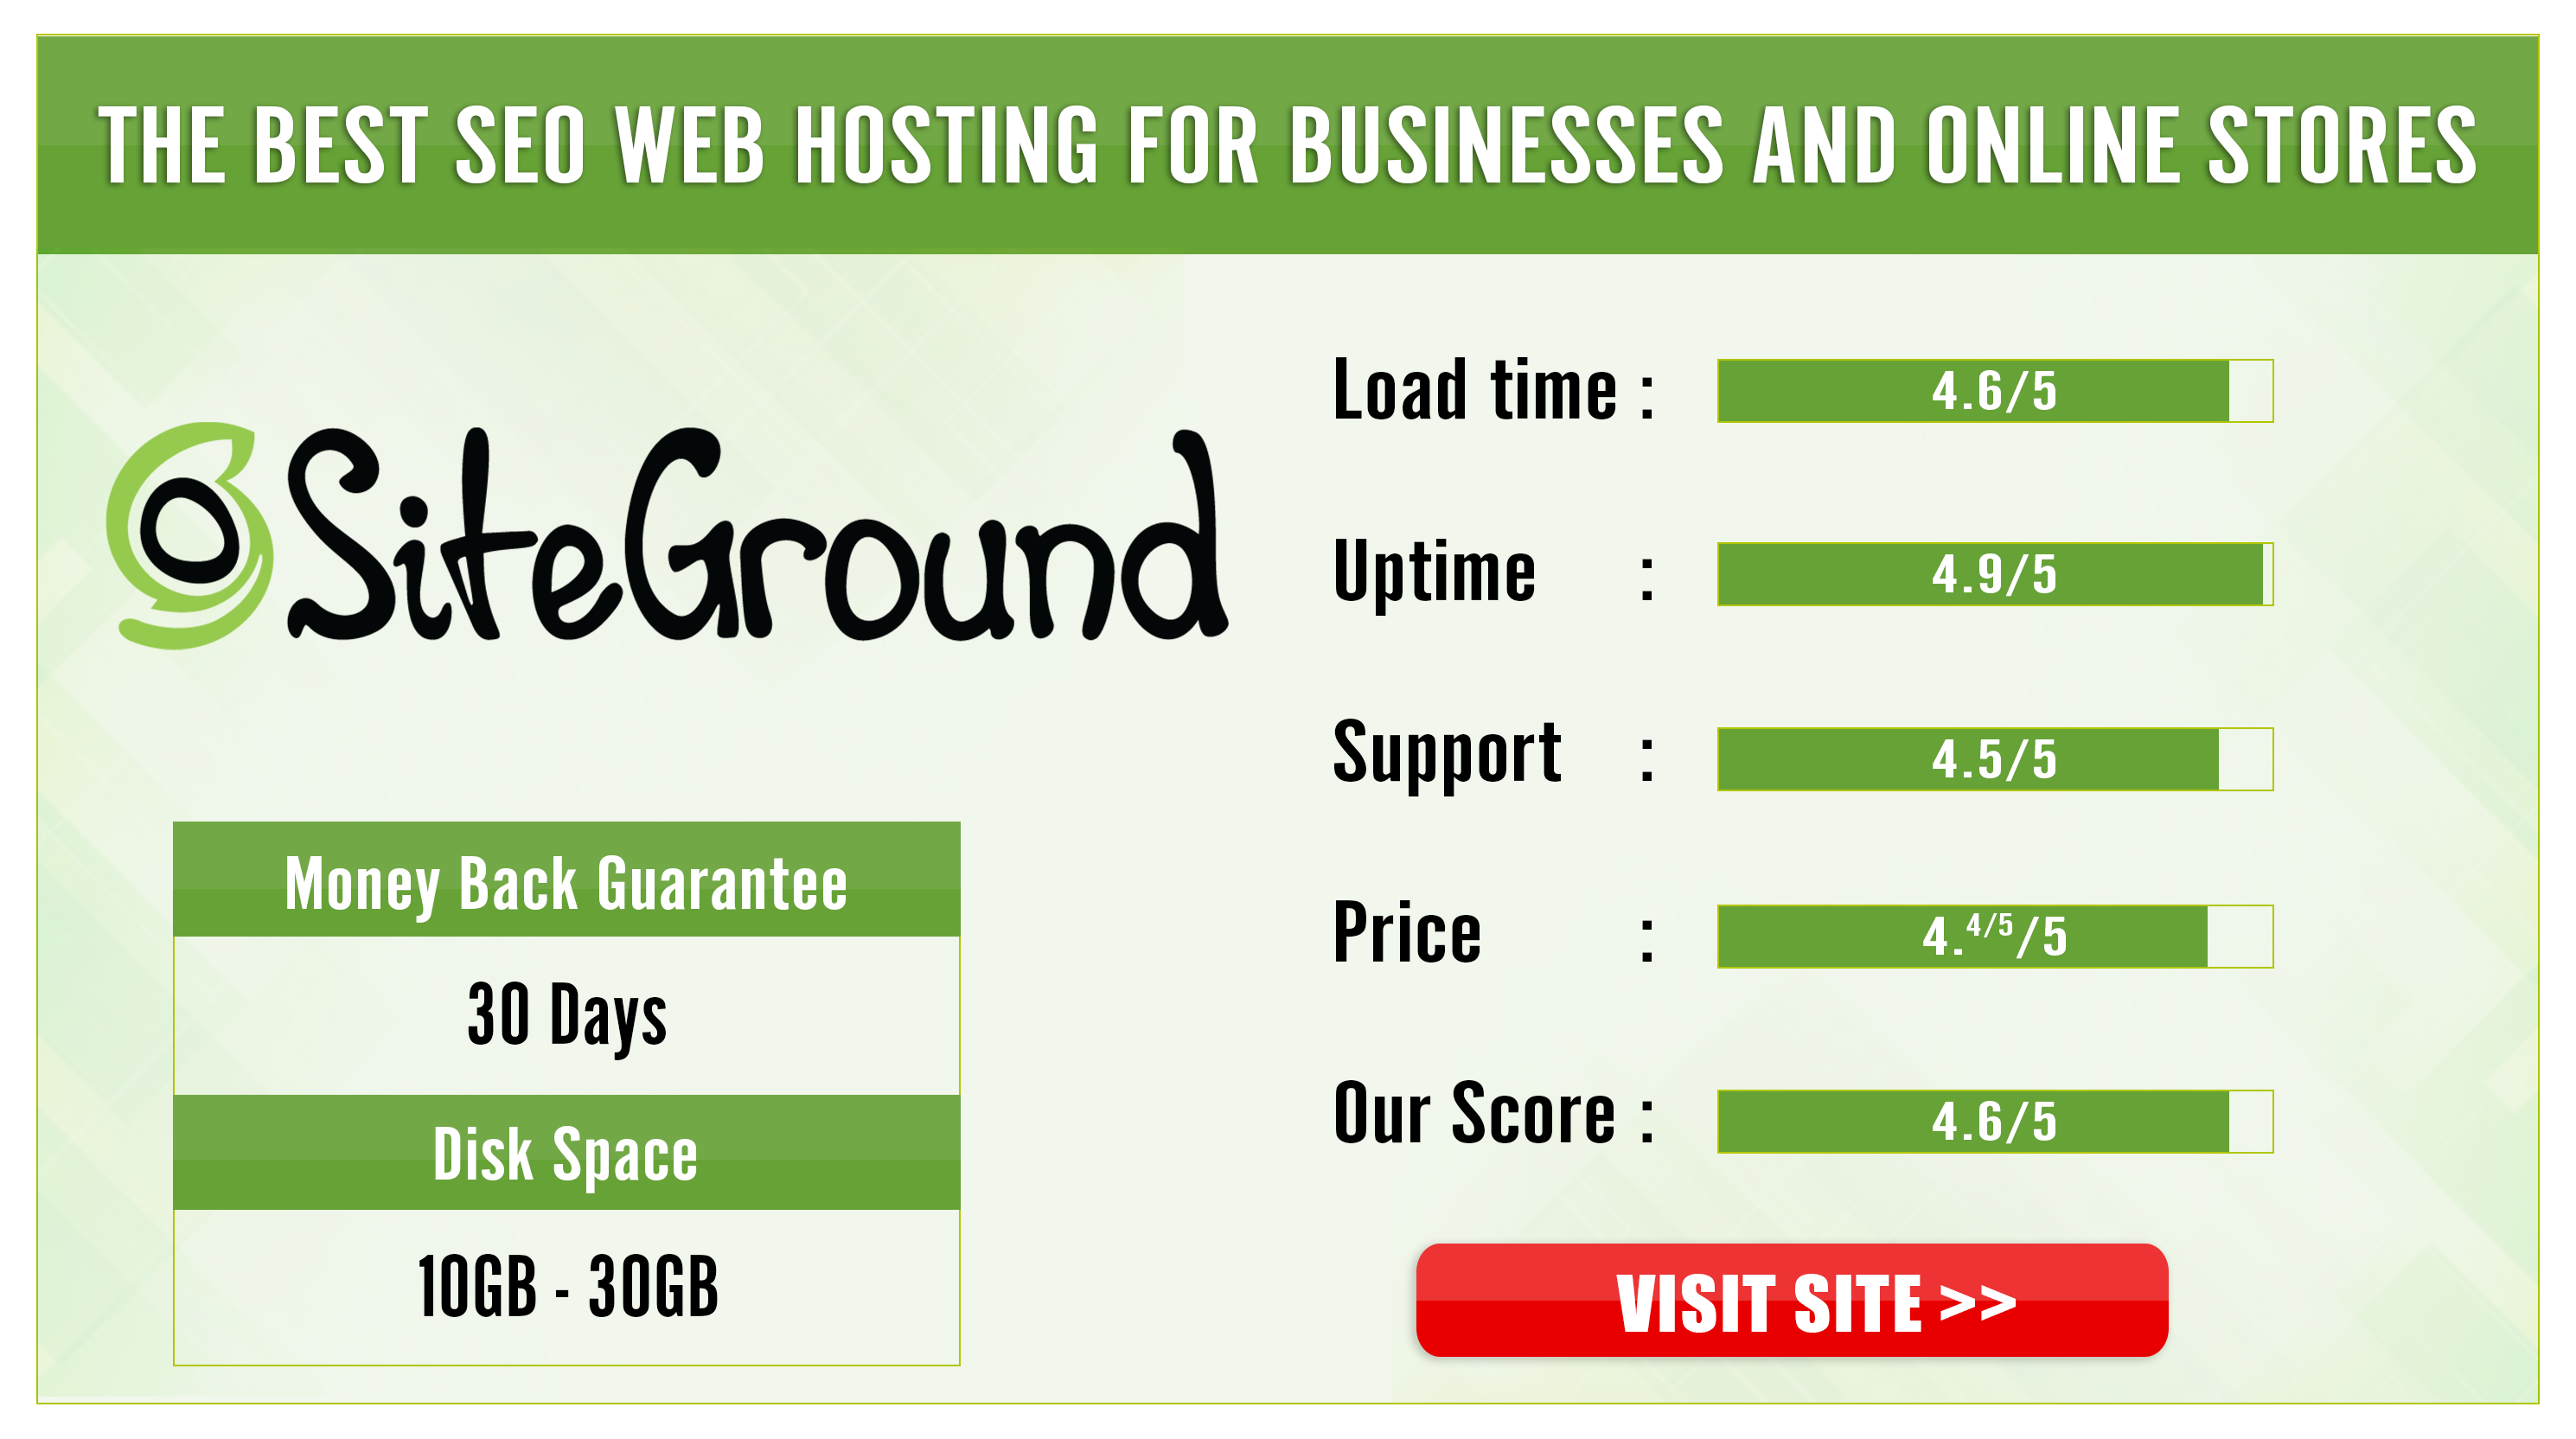 Best for Online Business - Siteground